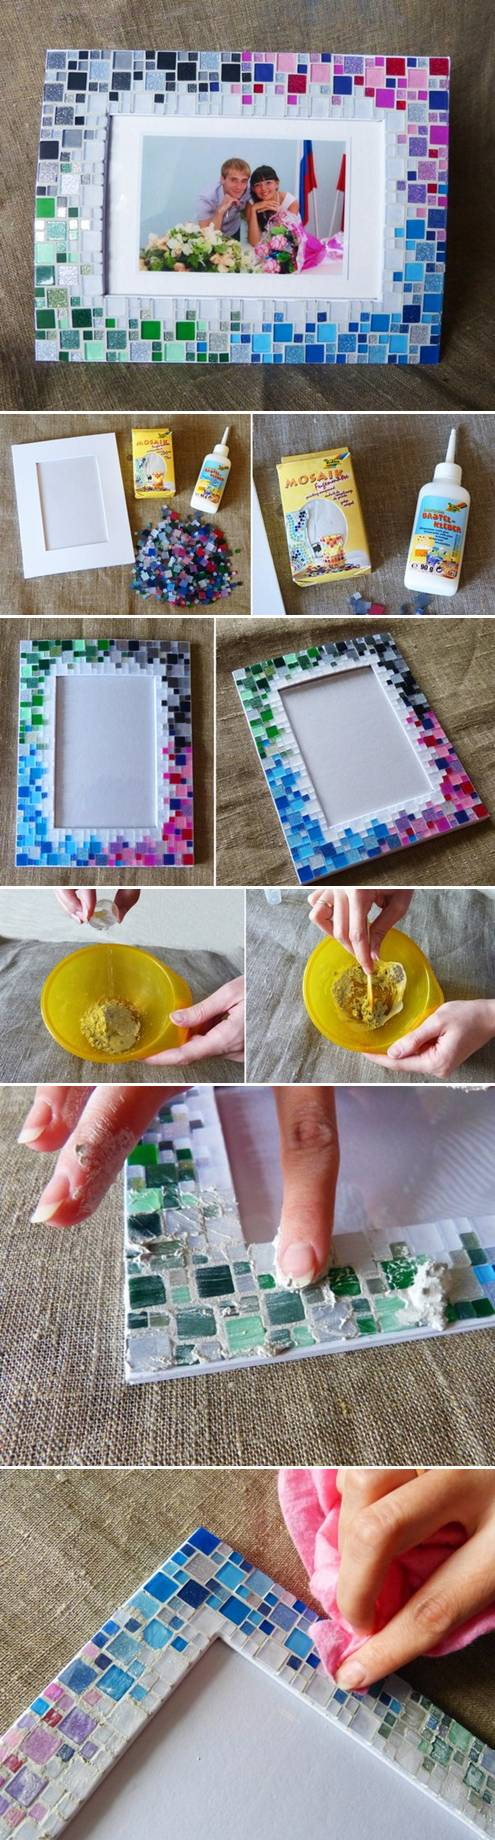 Diy picture frame ideas thinking outside the box simple yet elaborate looking create this super easy mosaic frame with the help of craftionary jeuxipadfo Gallery